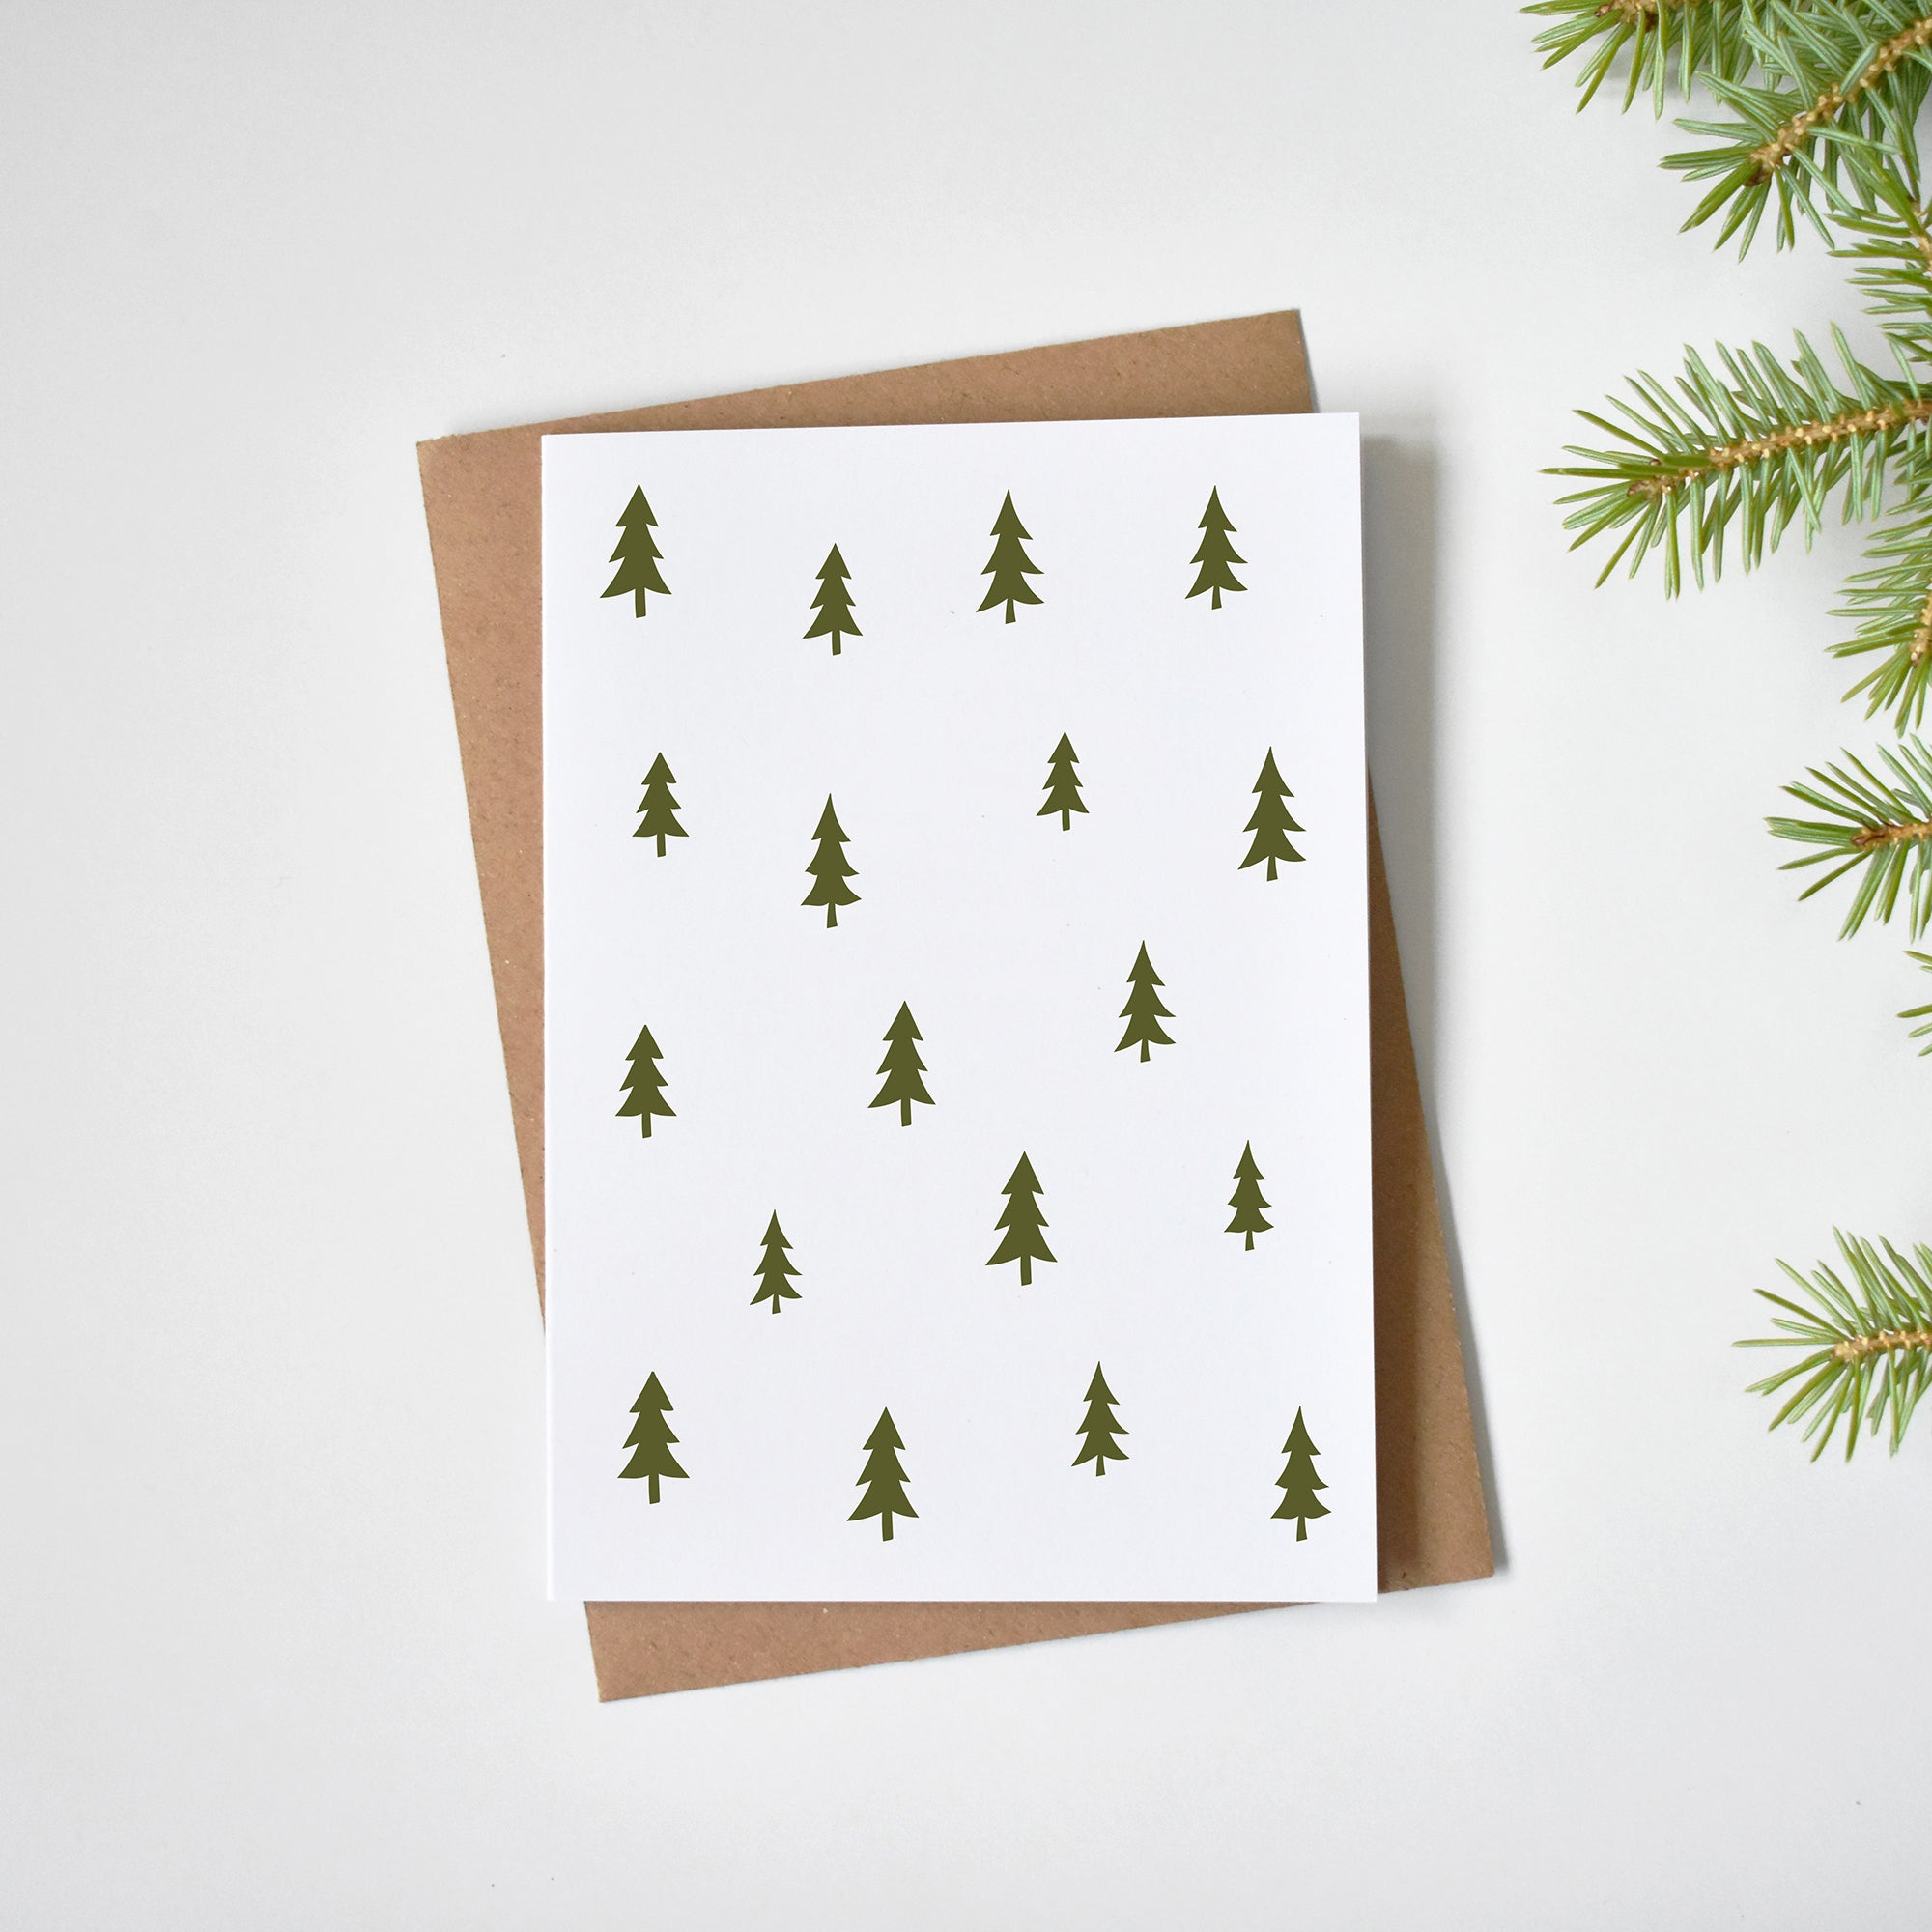 Minimalist Christmas trees pattern Christmas cards elemente design